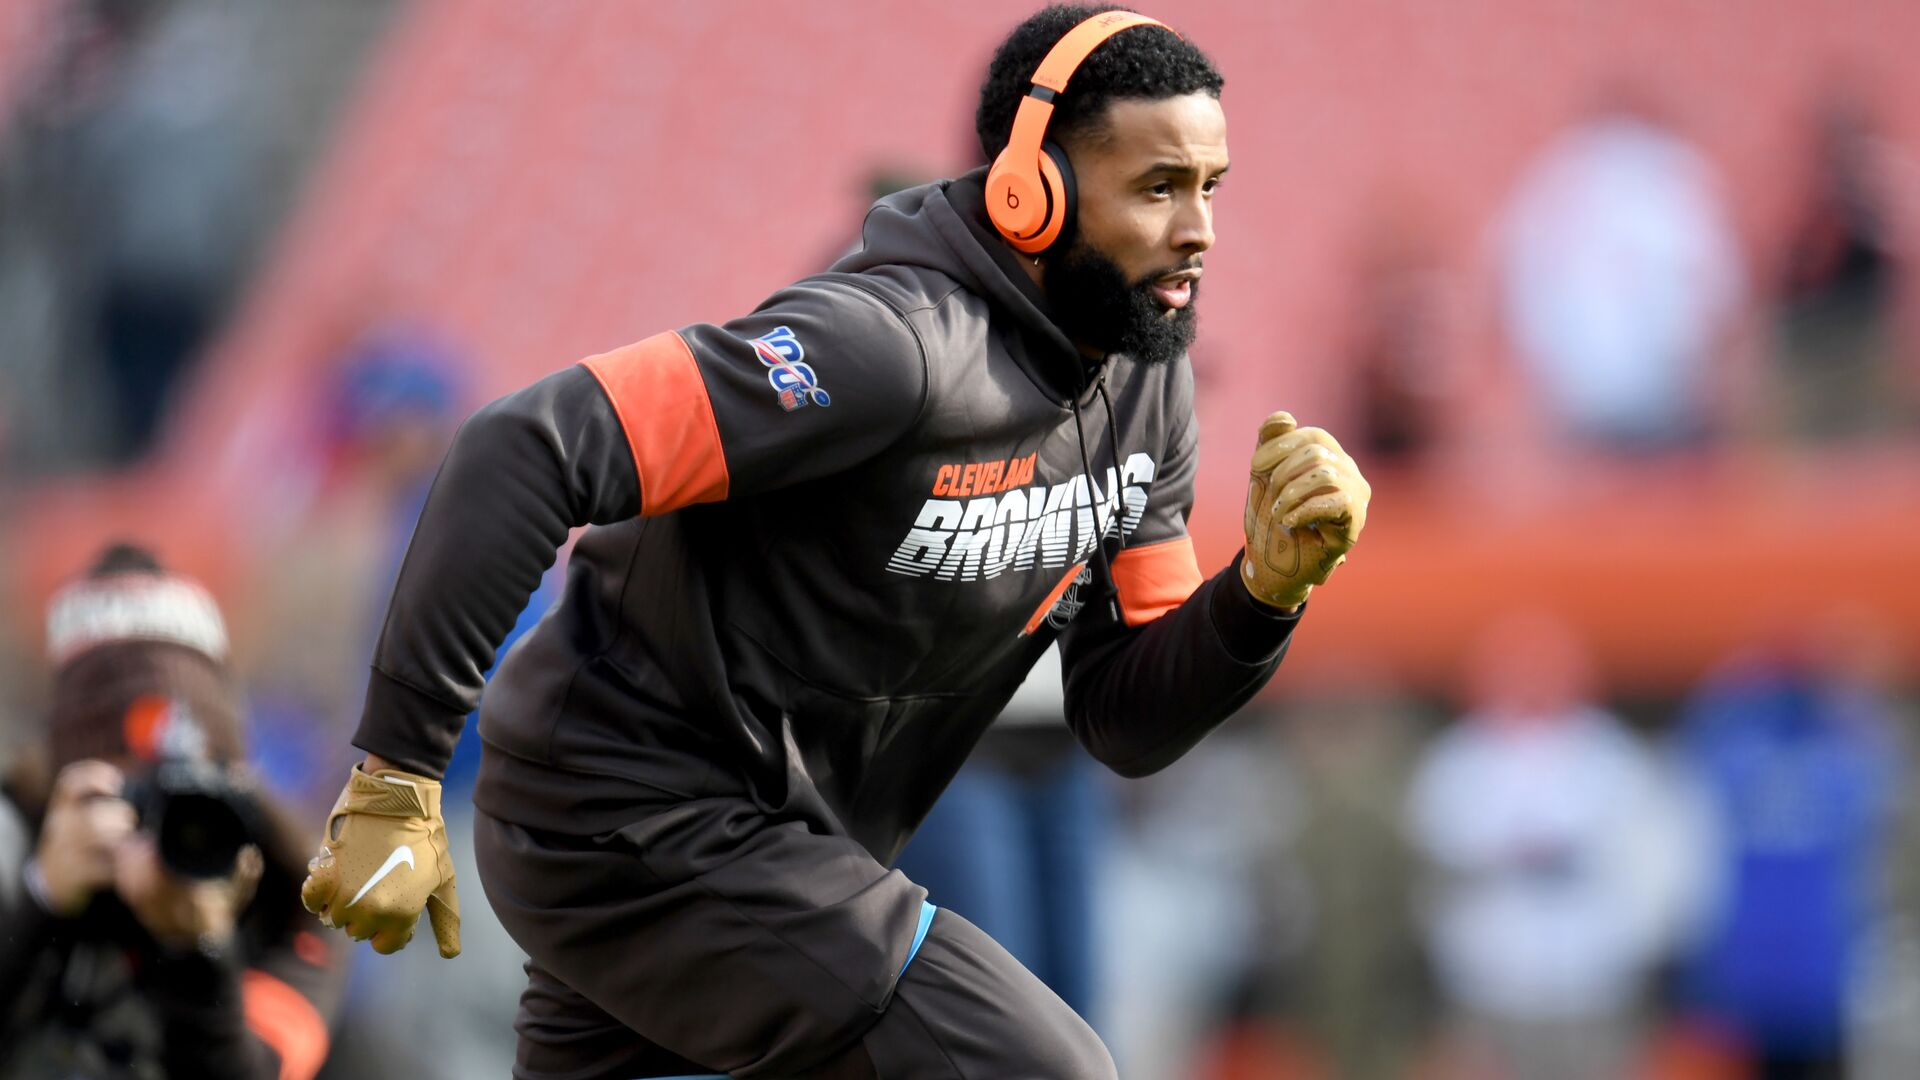 Daily Dawg Tags: Rumors flying around Odell Beckham, Cleveland Browns